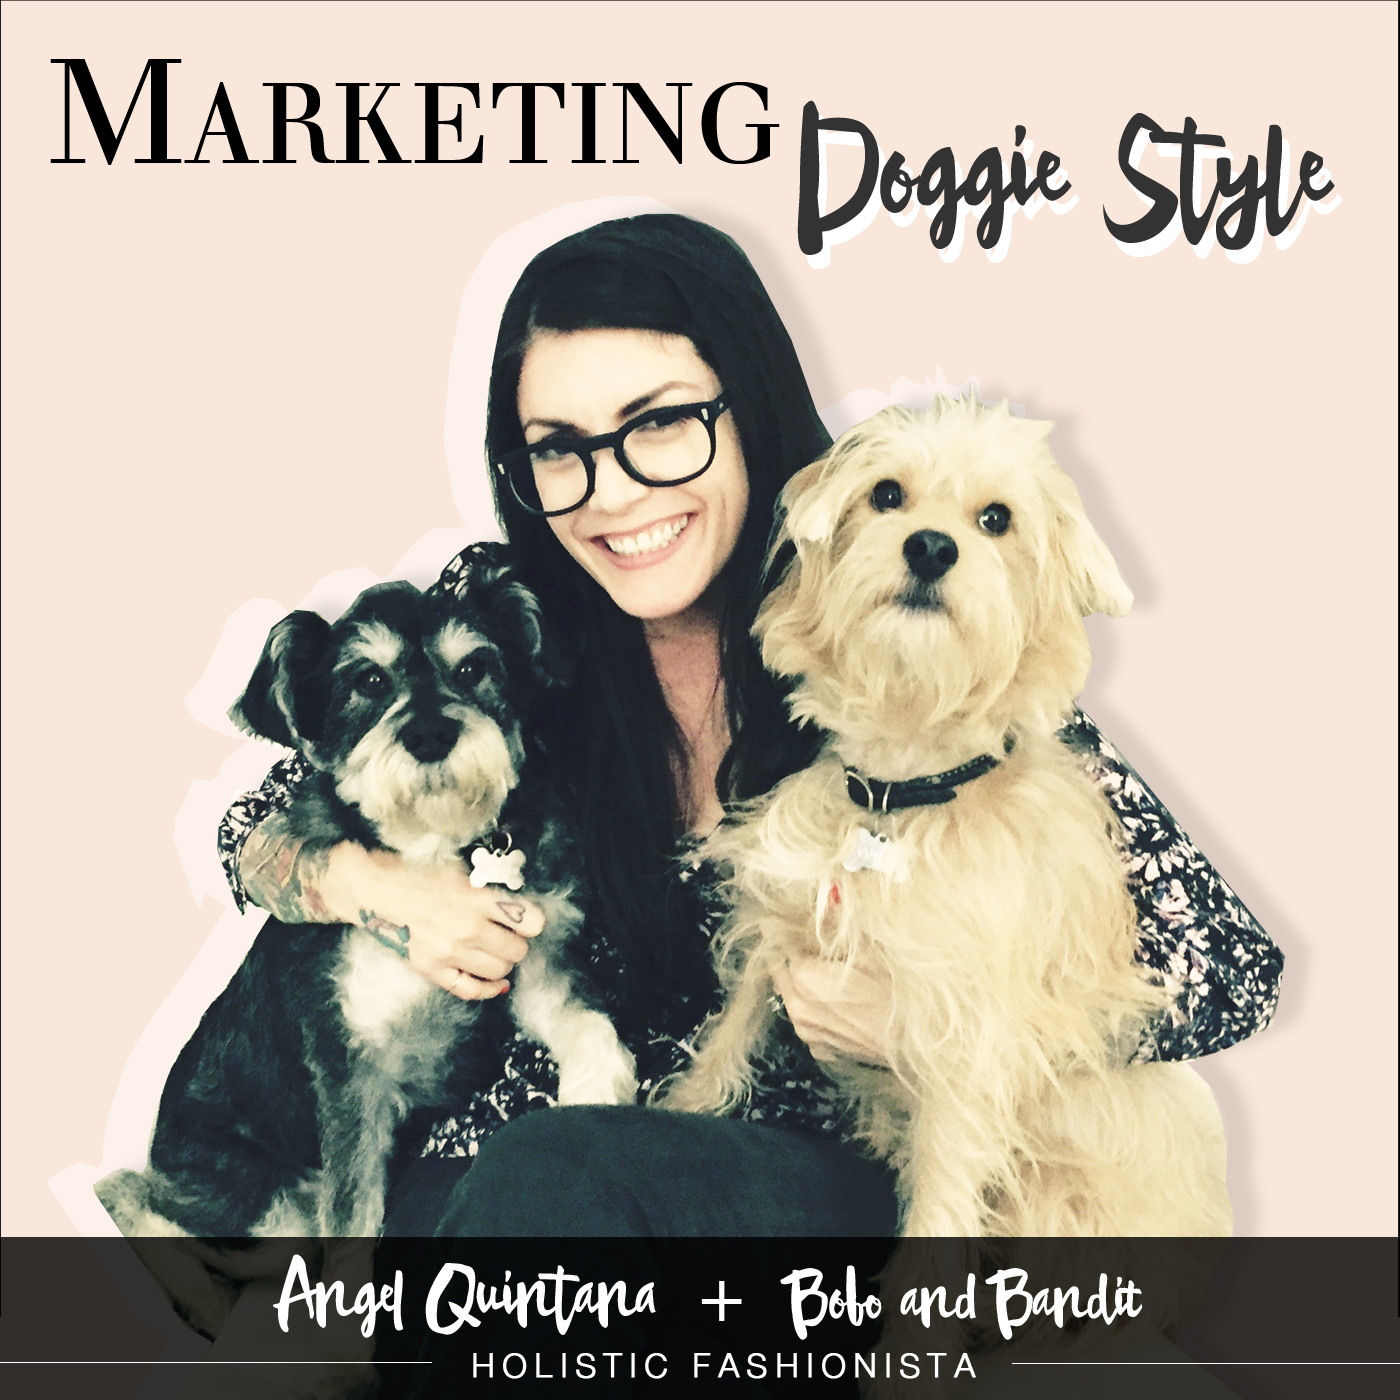 Marketing Doggie Style - Holistic Fashionista